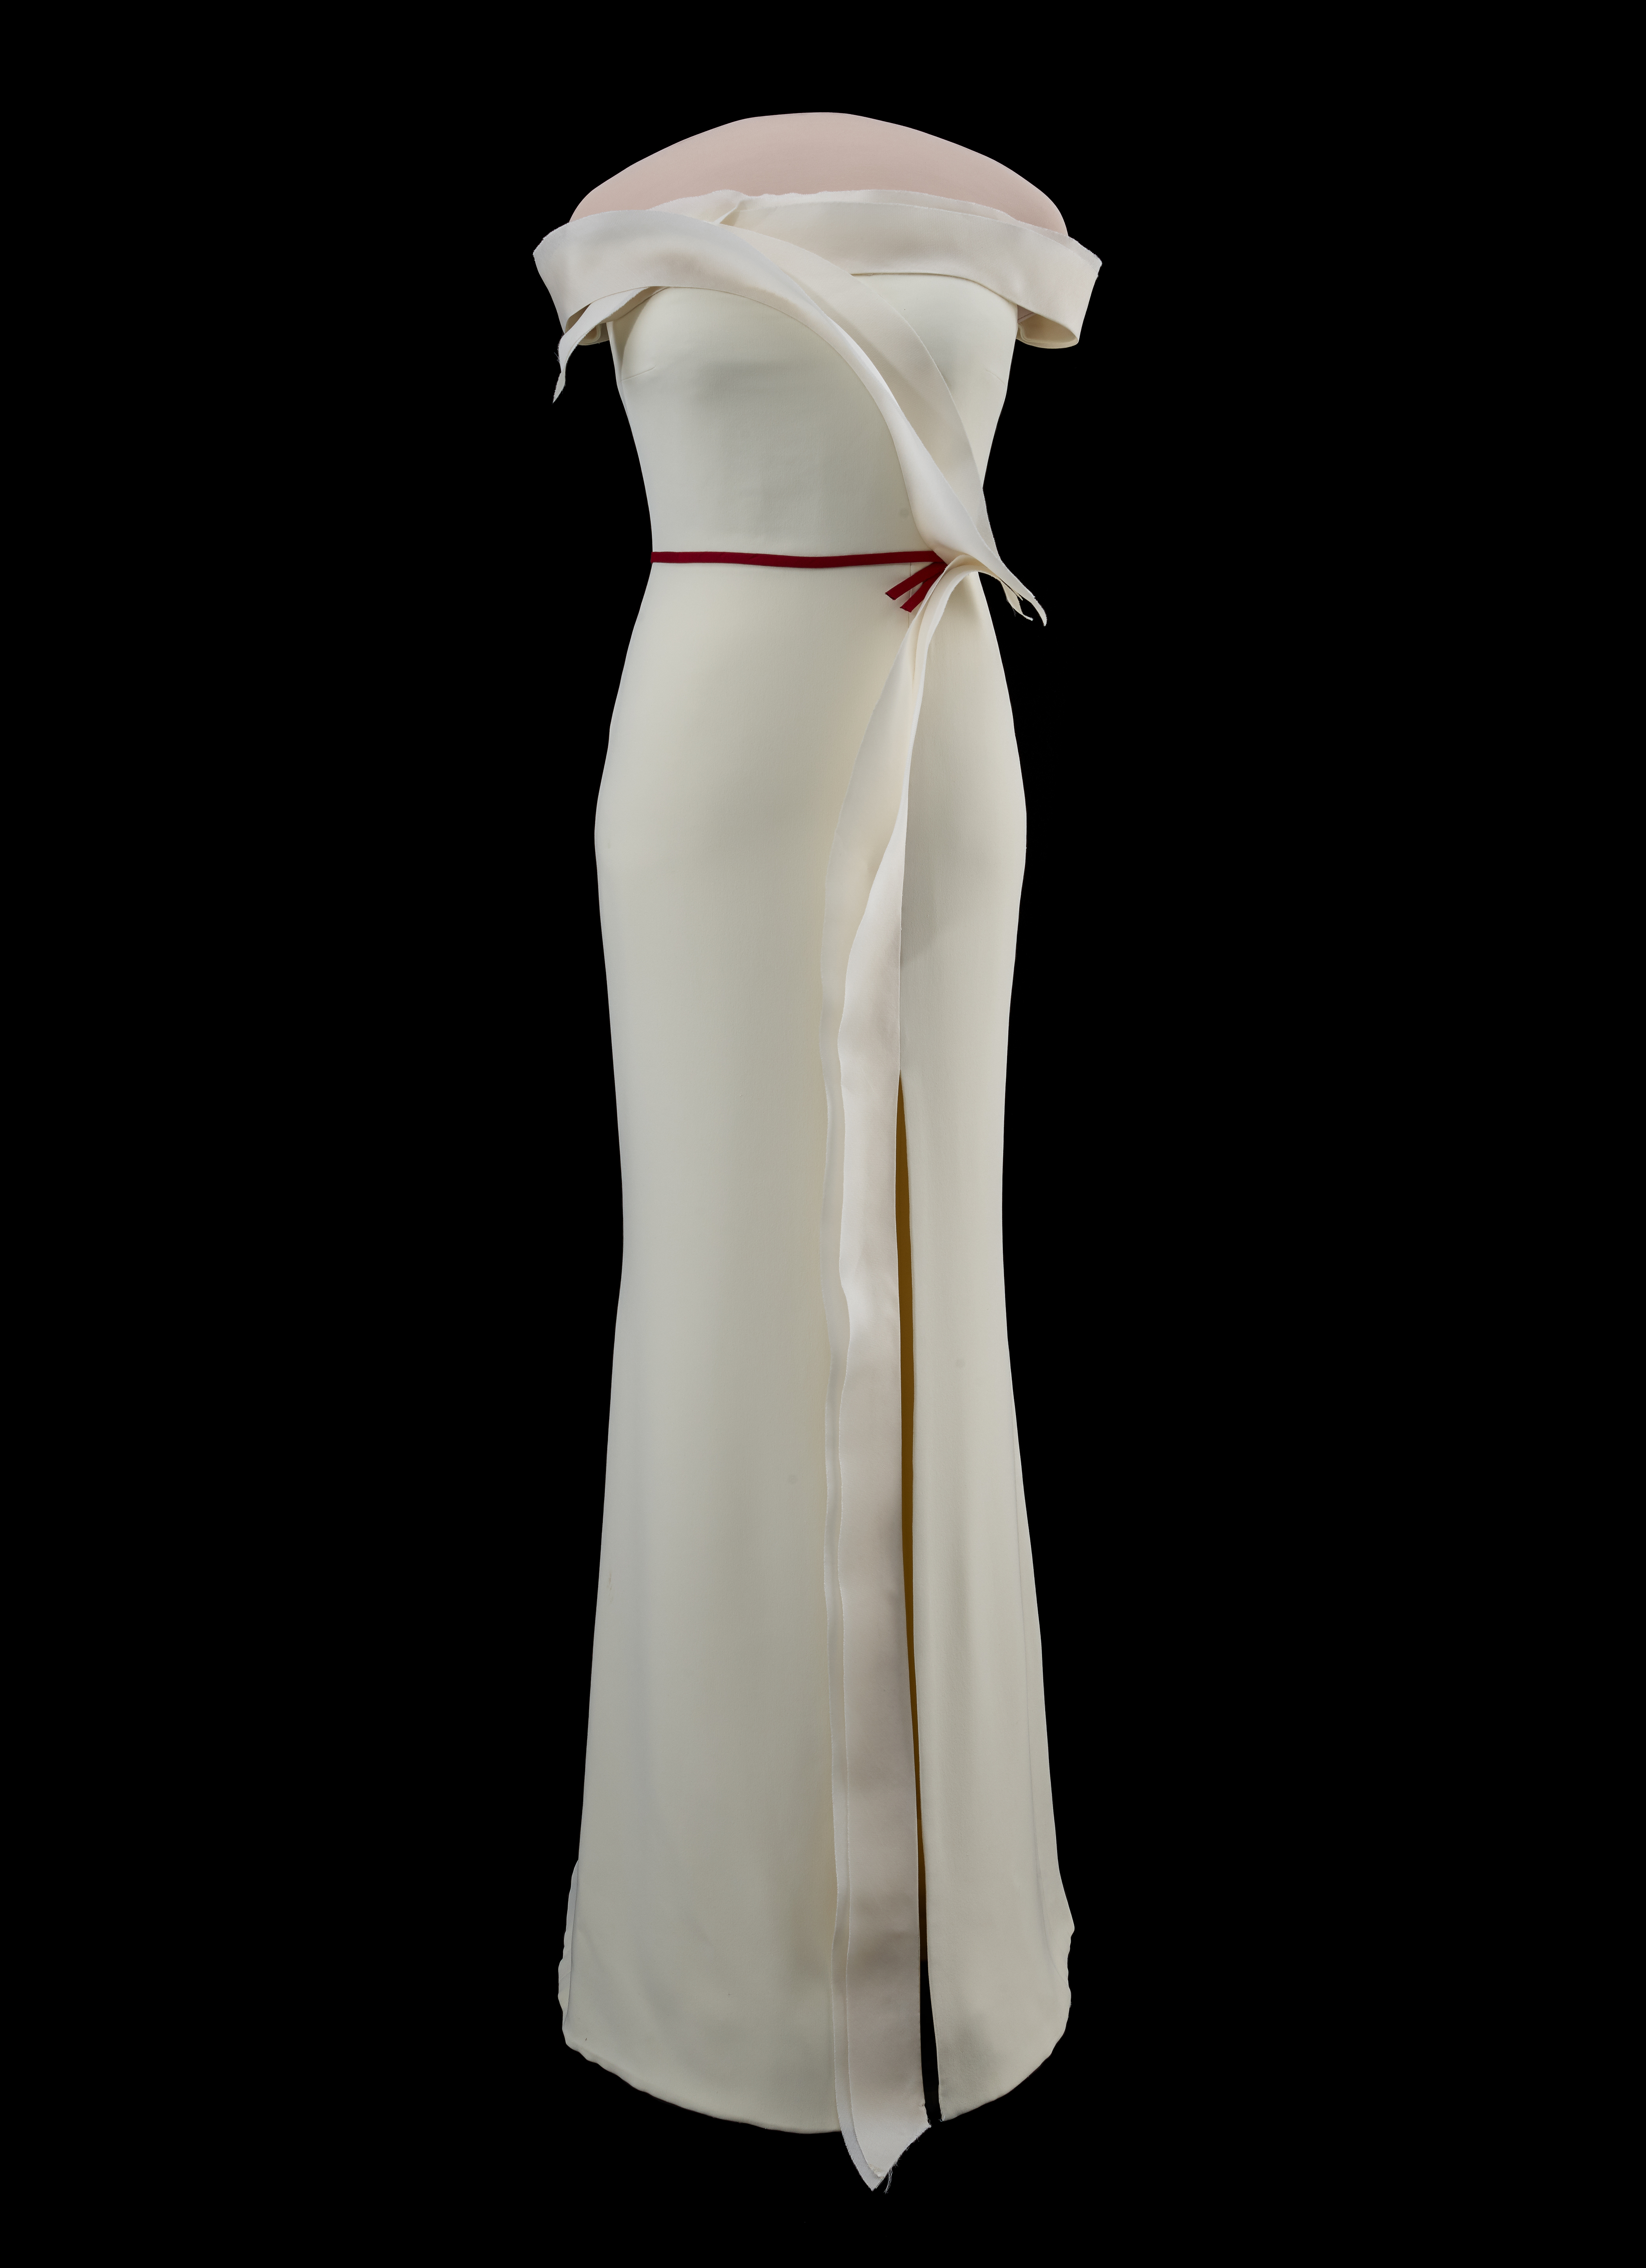 The Continuing Tradition The Smithsonian Receives Mrs Trump S Inaugural Gown National Museum Of American History